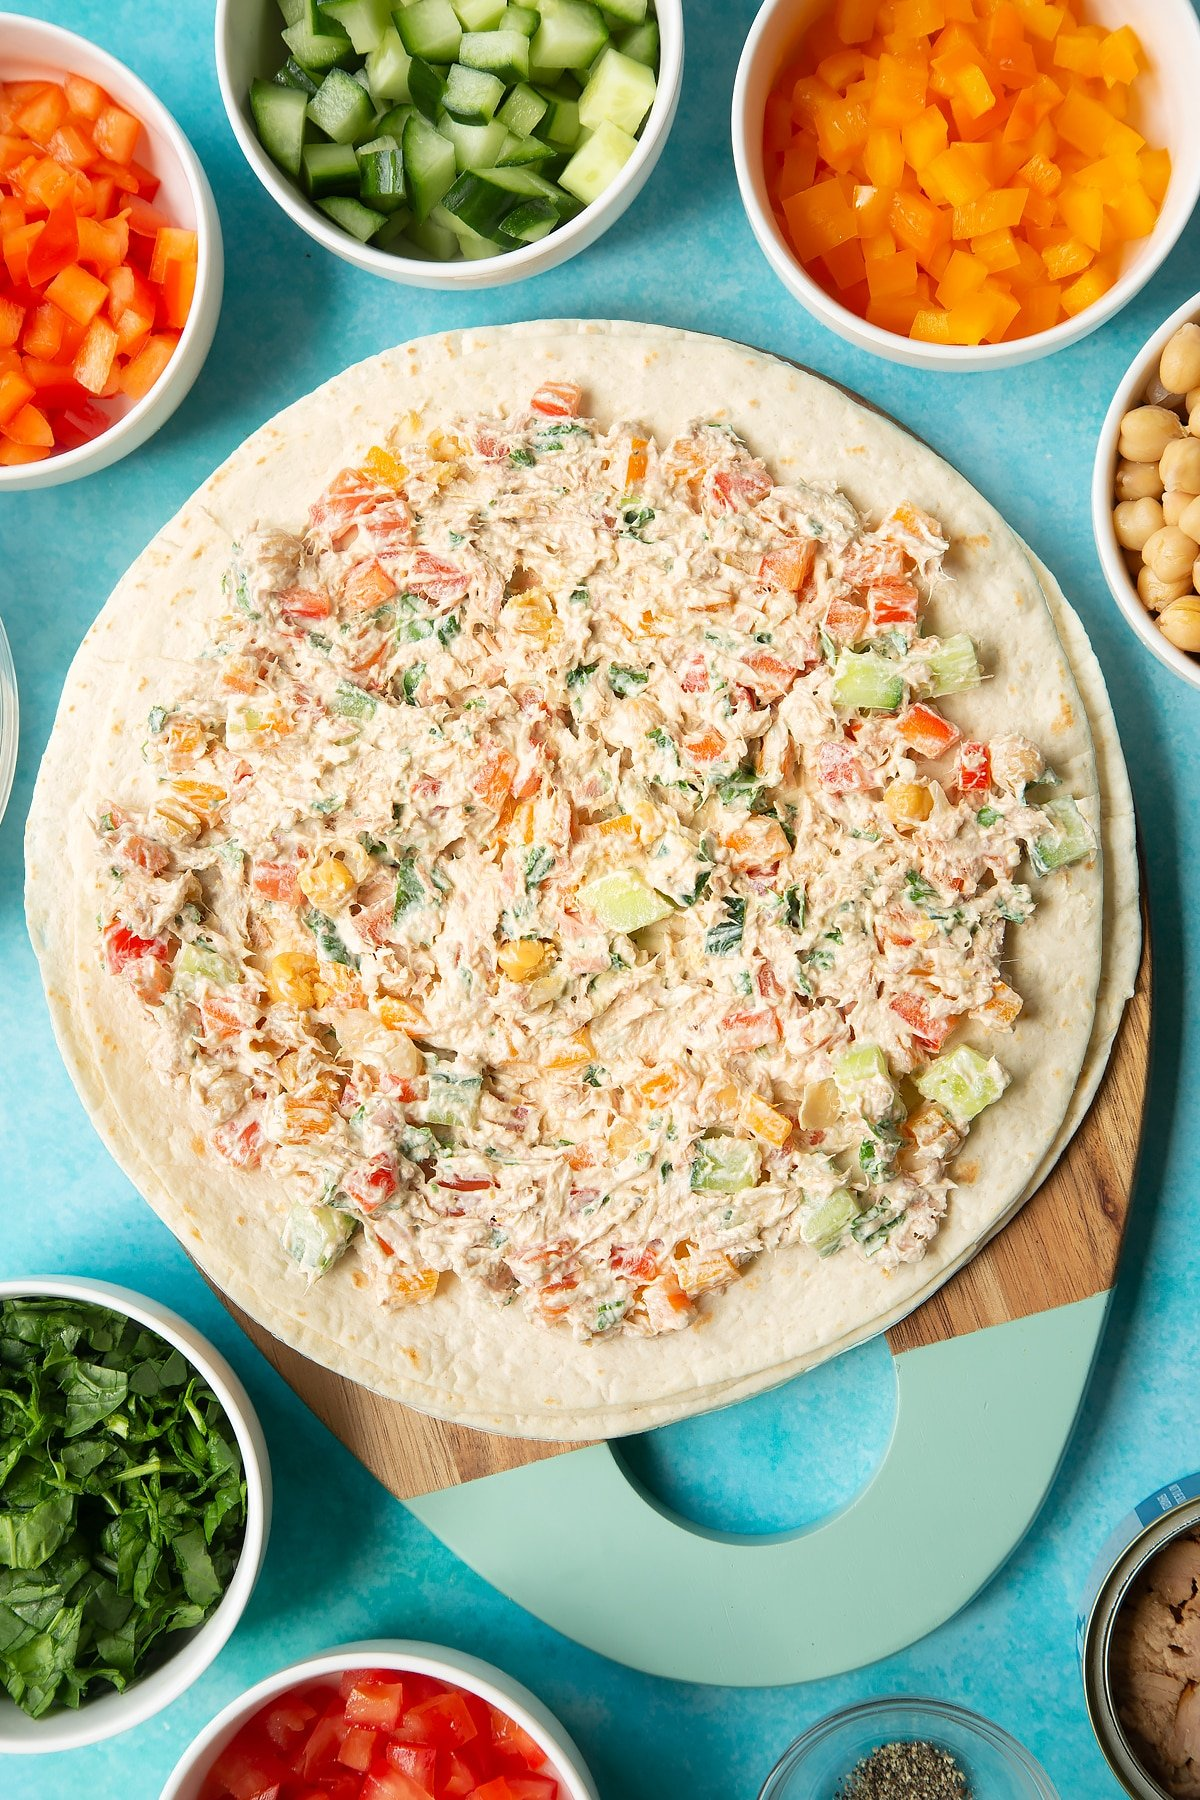 Flour tortillas spread with a mix of cream cheese, tuna and veg. Ingredients to make tuna pinwheels surround the board.